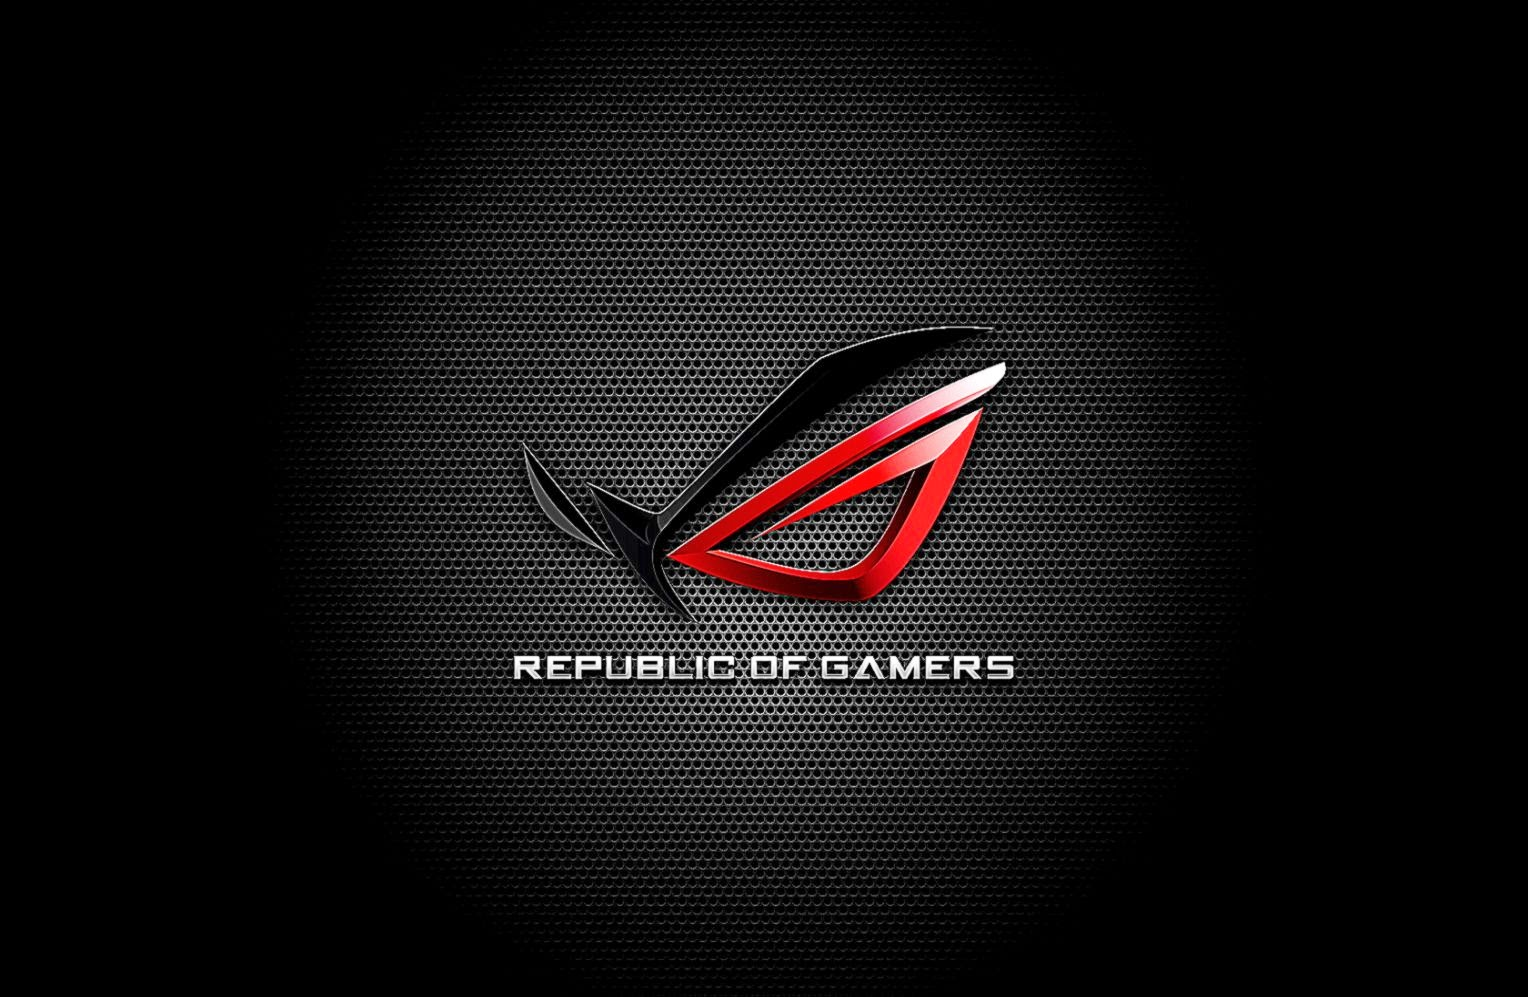 Asus Rog Logo Hd Wallpaper